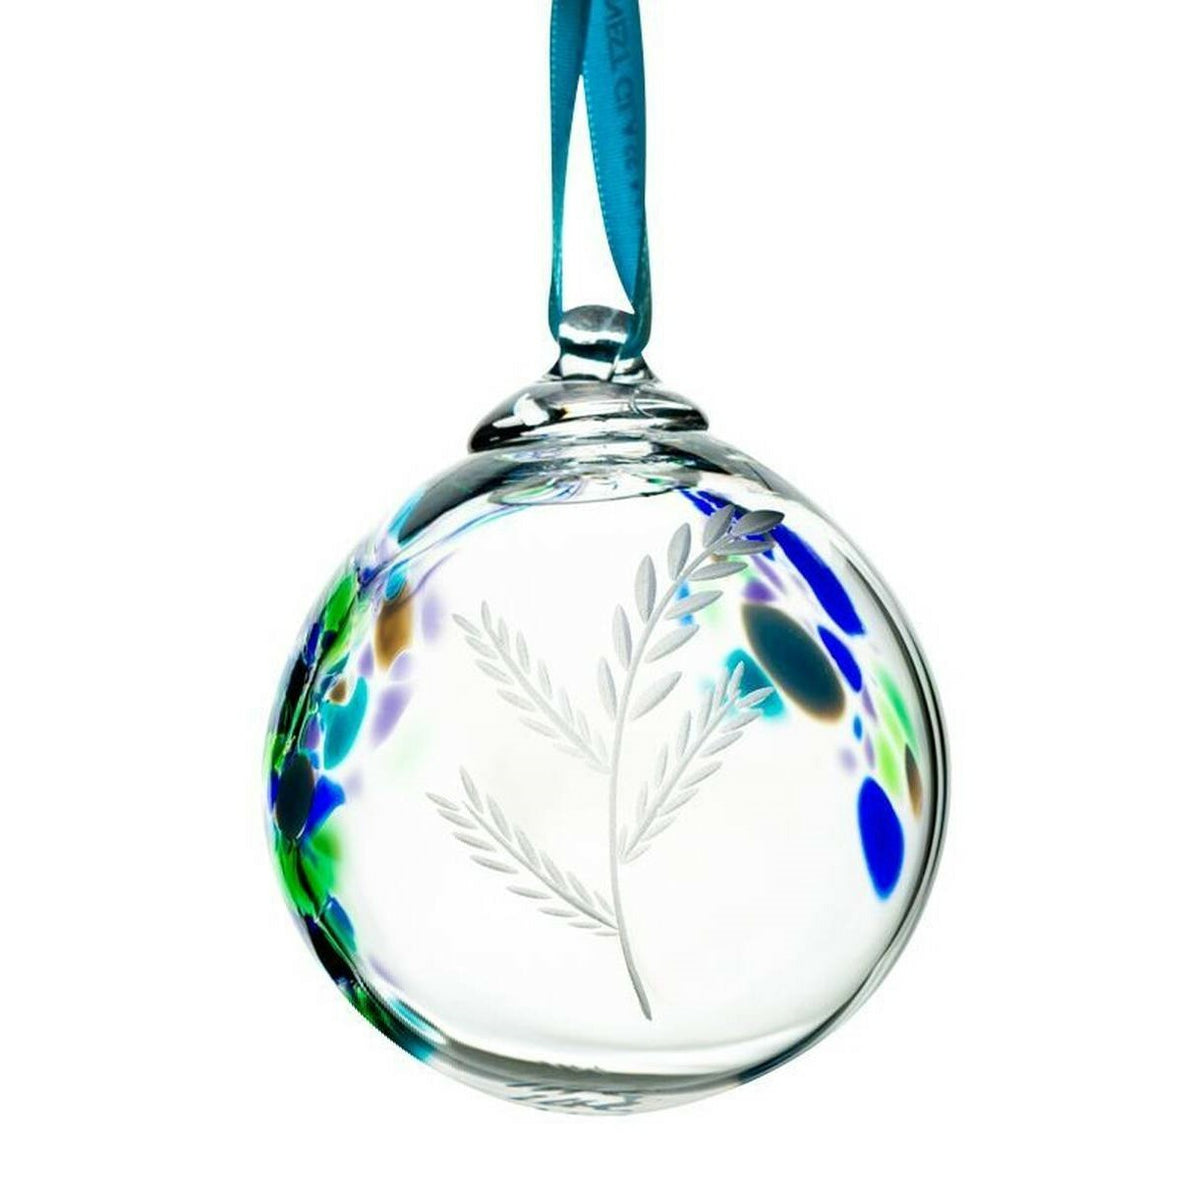 Wild Atlantic Way Bauble